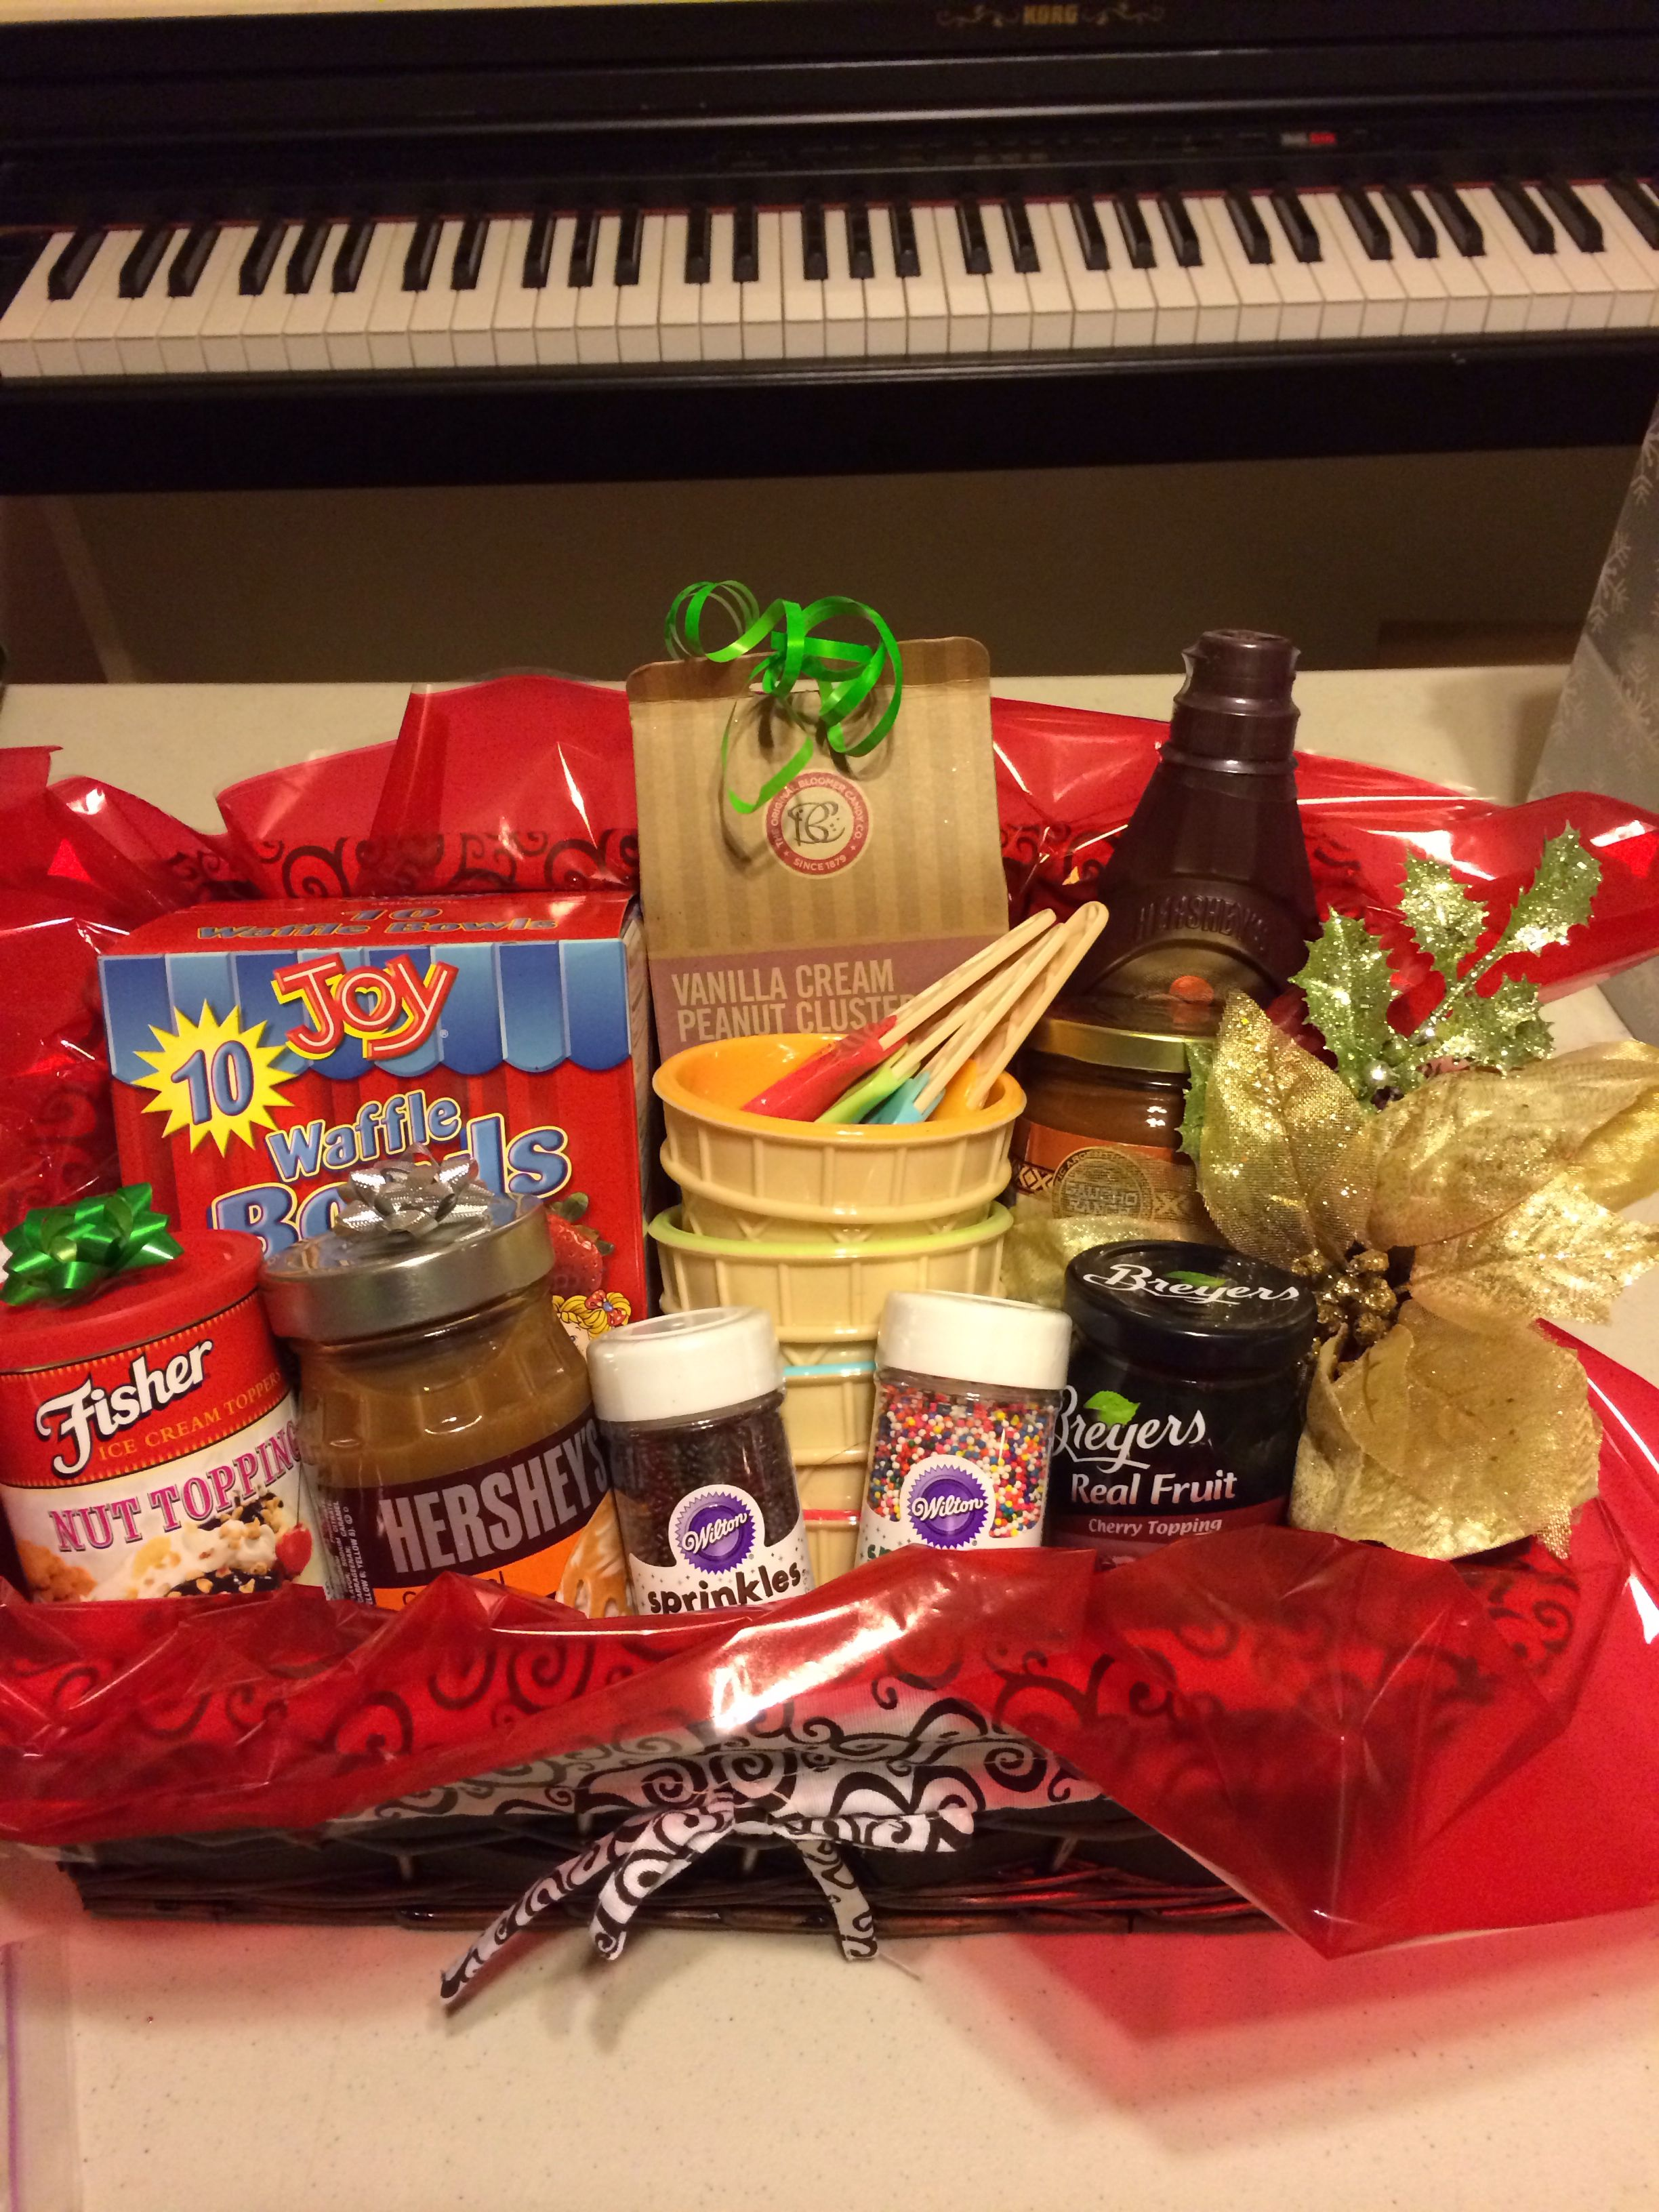 Inexpensive Gift For Entire Family Ice Cream Social Basket Family Gift Baskets Christmas Gift Baskets Diy Gift Baskets